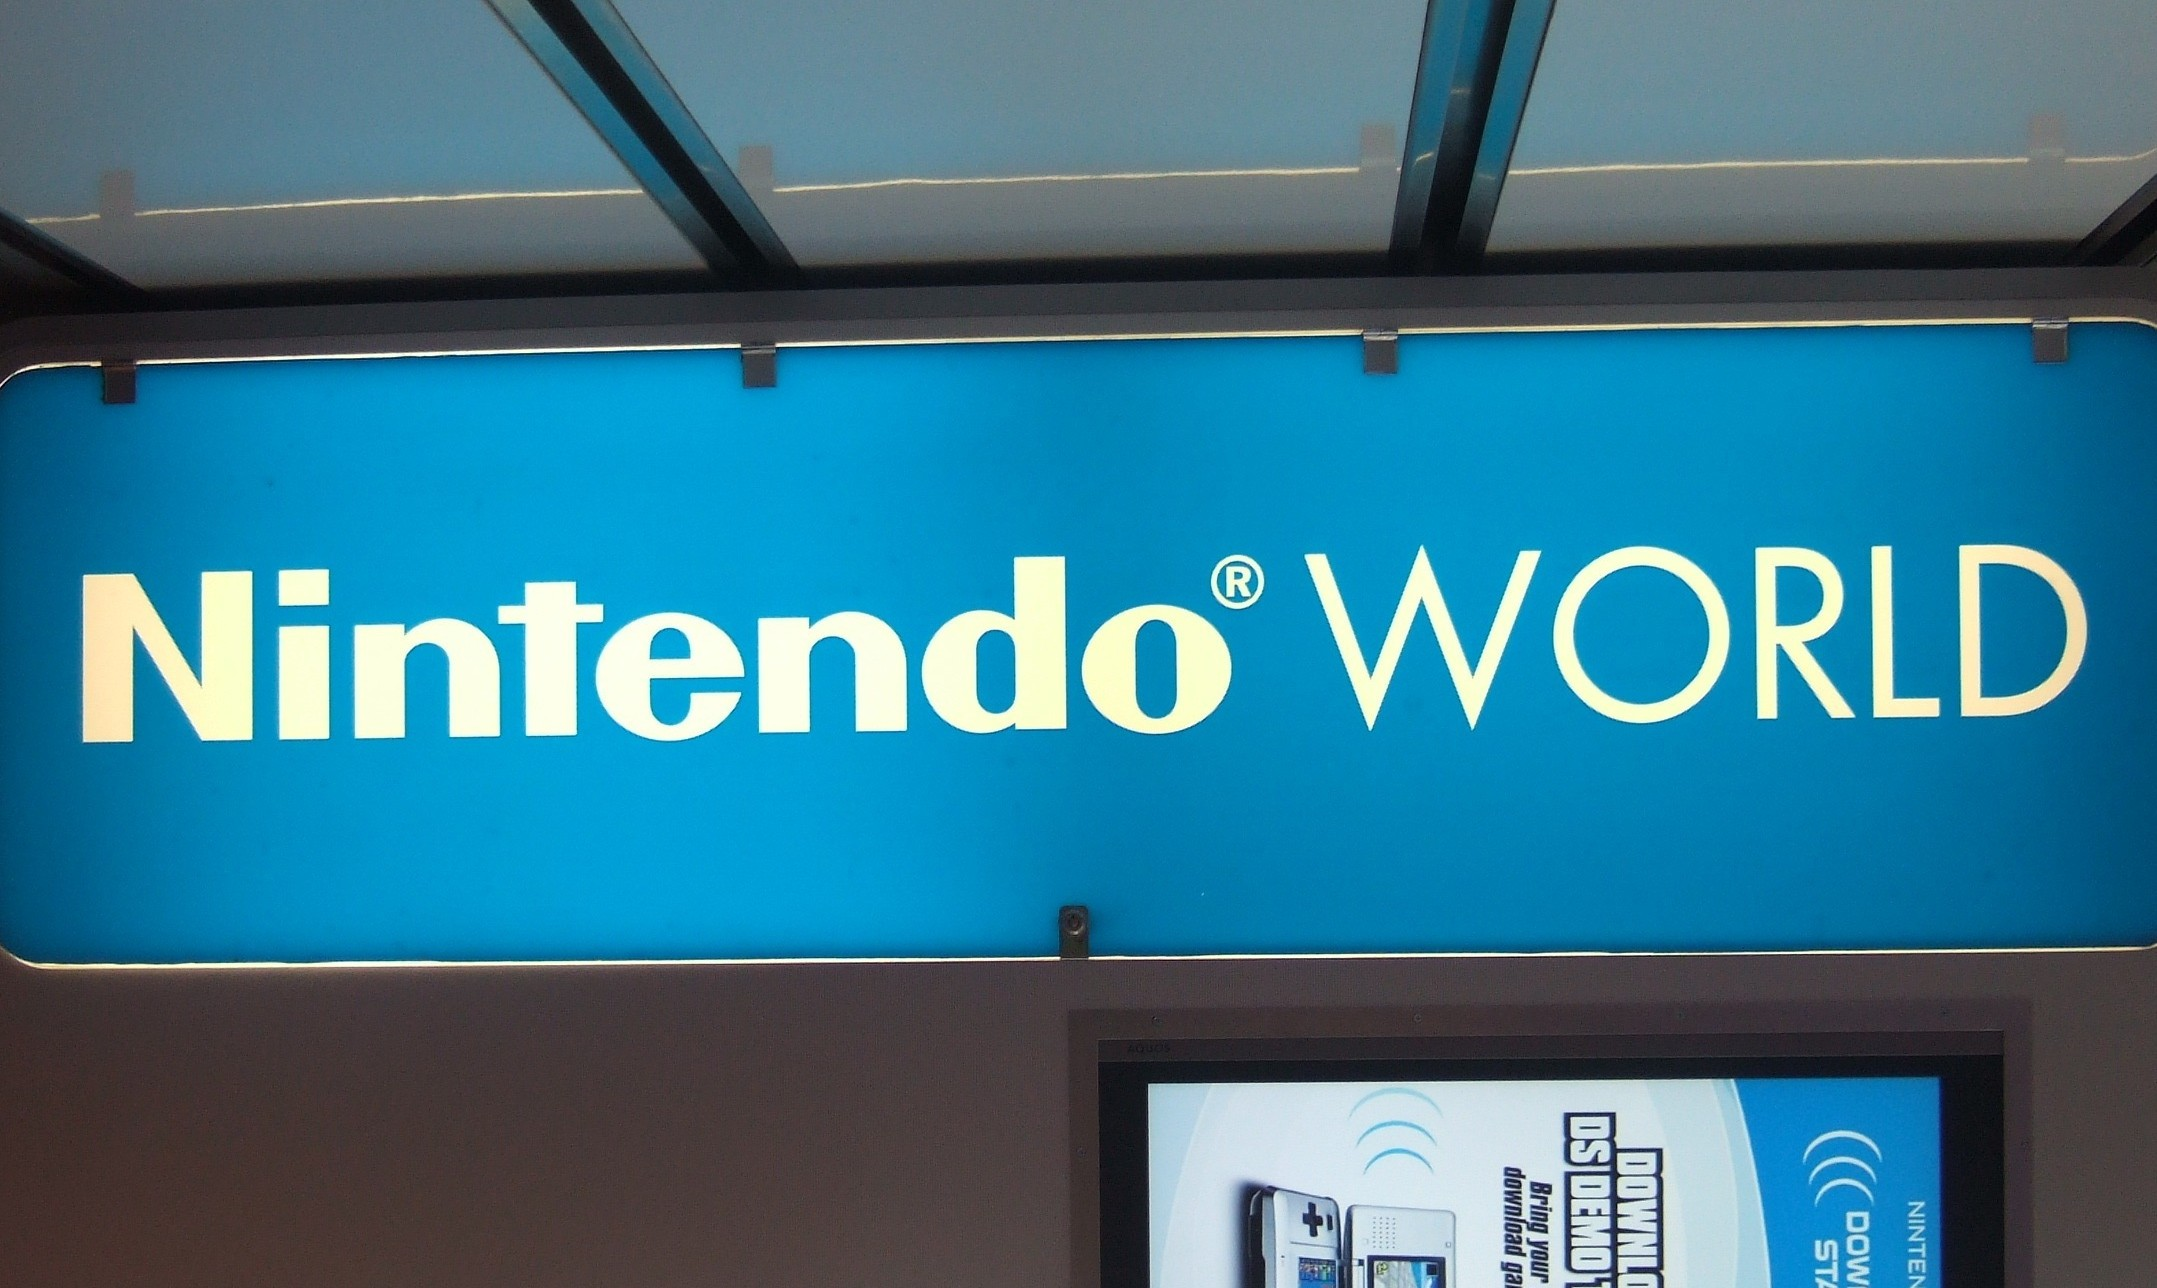 030 - nintendo world sign